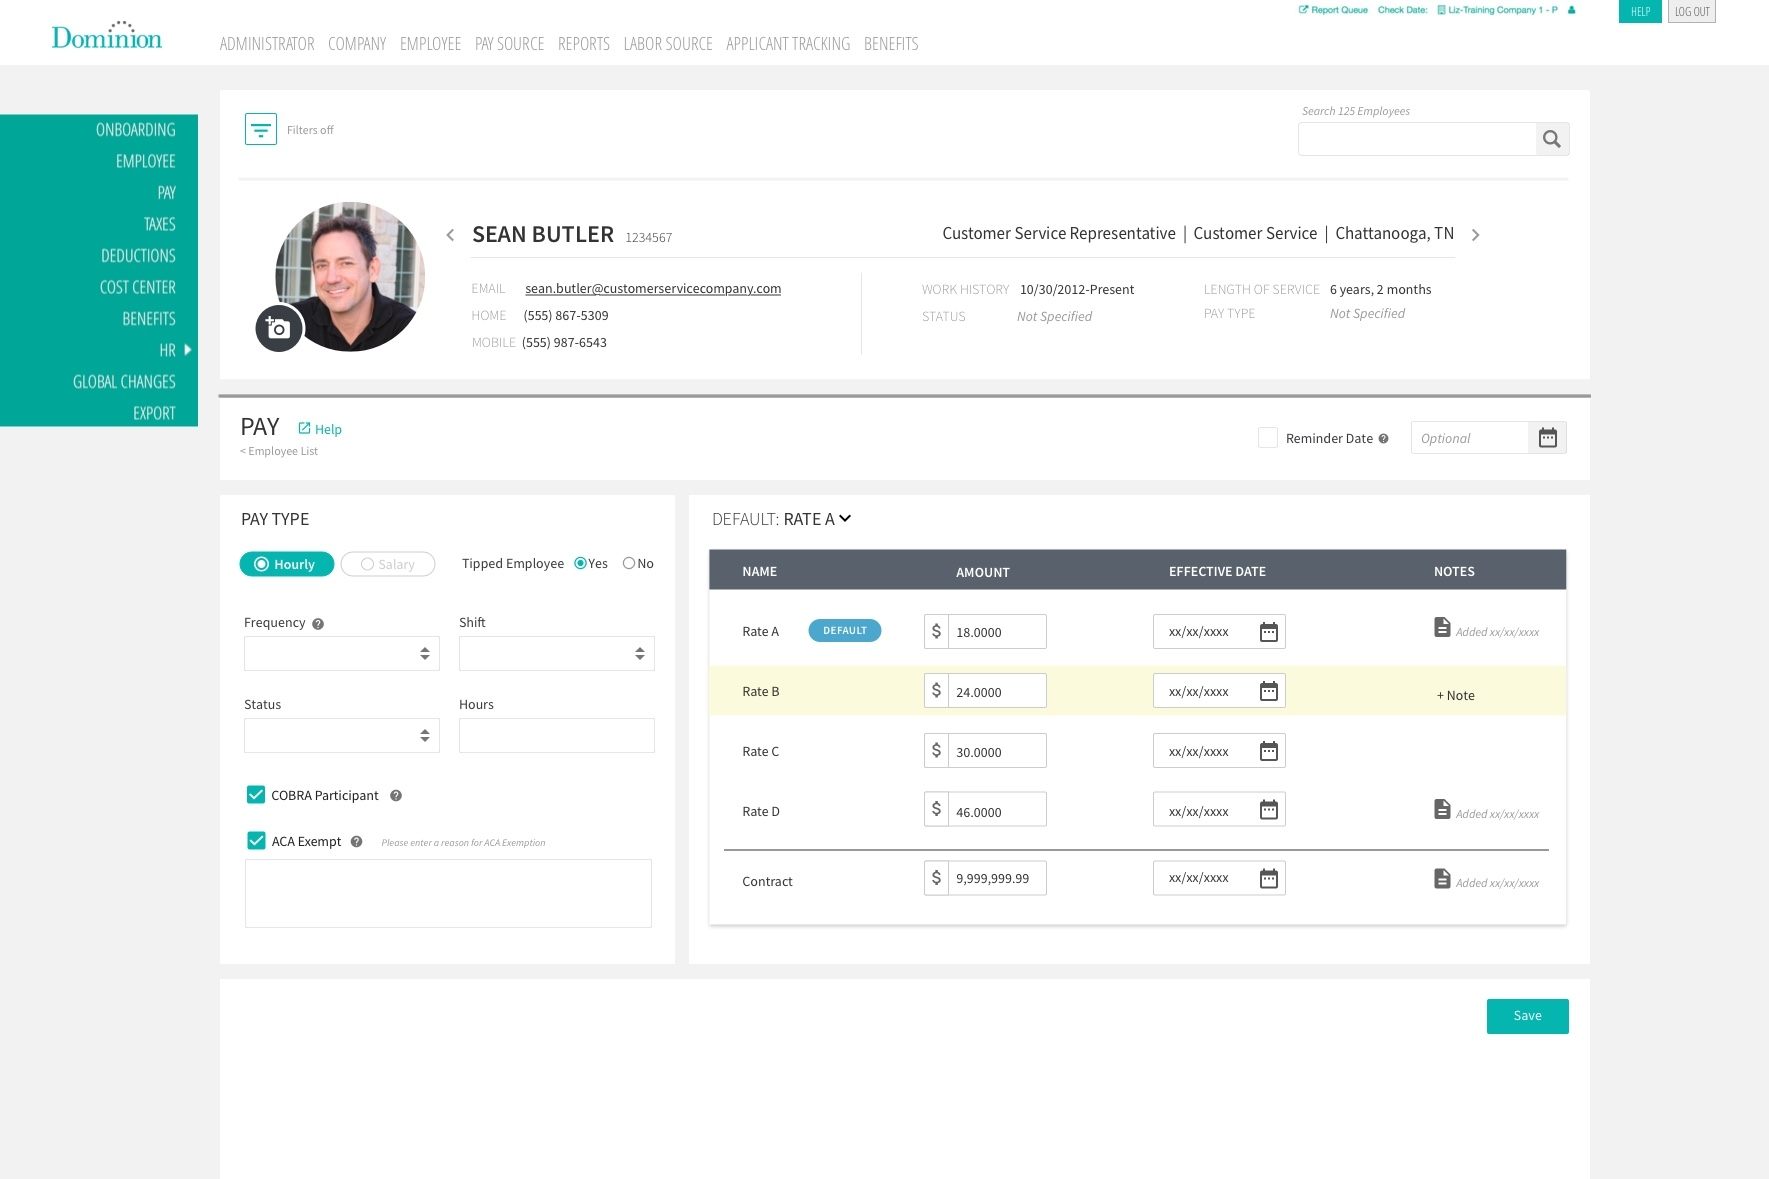 Here is the view of your Hourly employee screen.